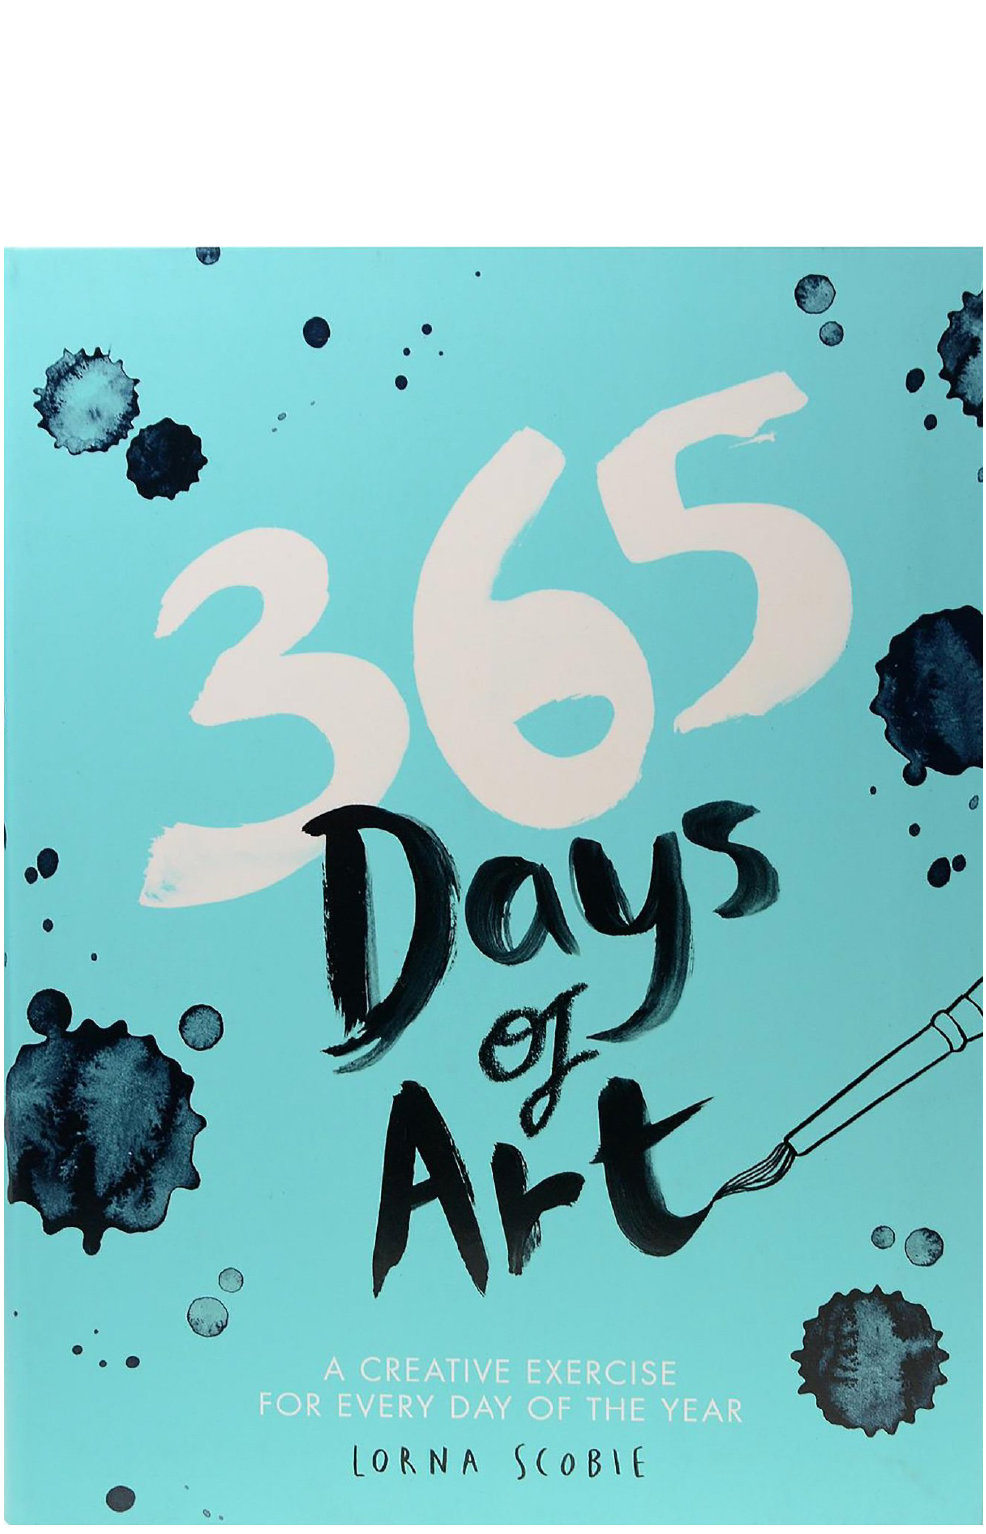 blue-365-days-of-art-blue.png